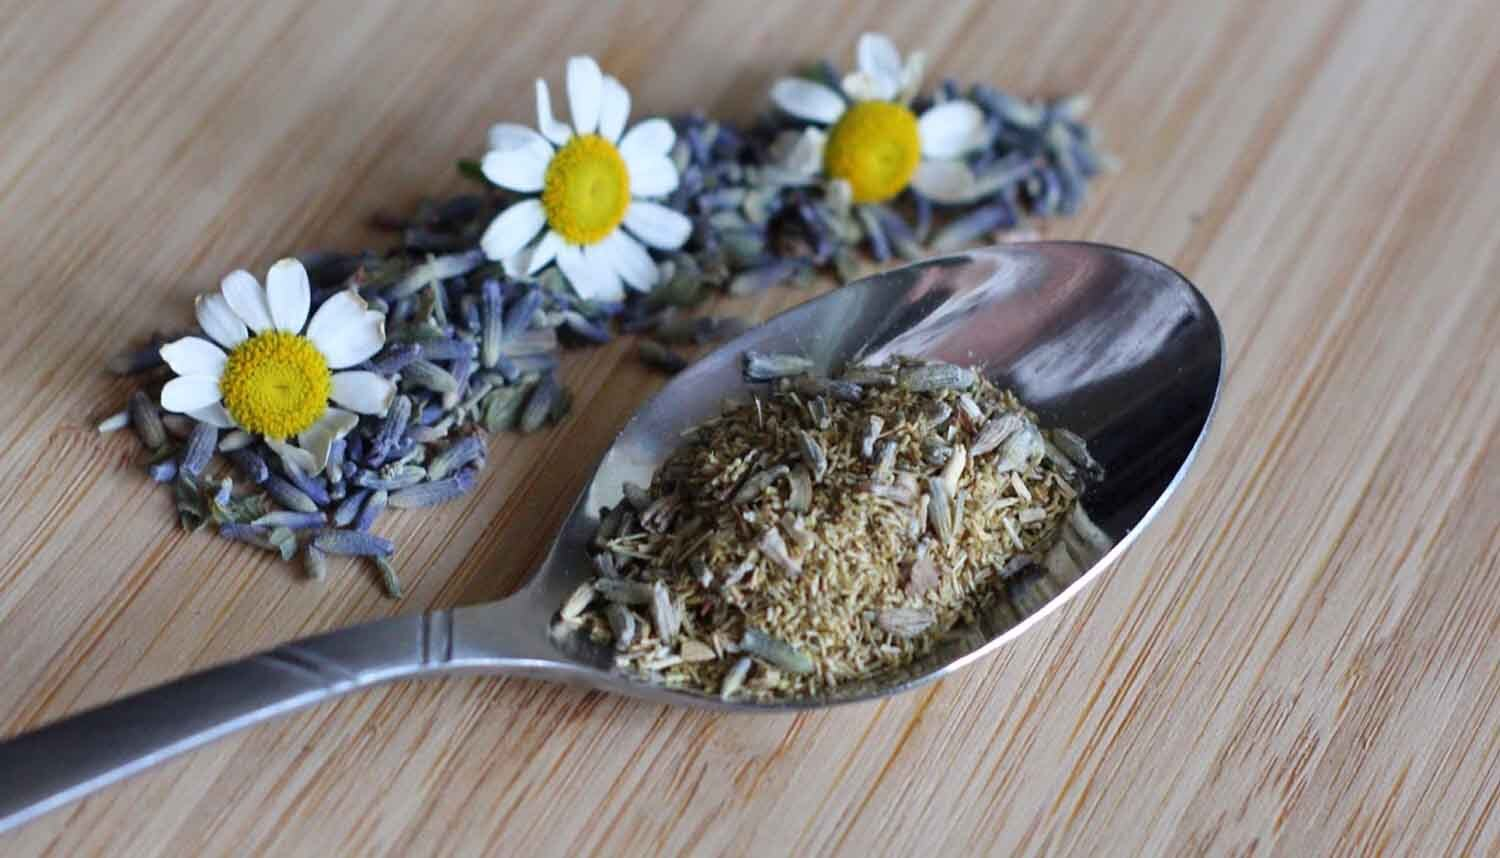 Lavender And Other KCup Ingredients On A Spoon